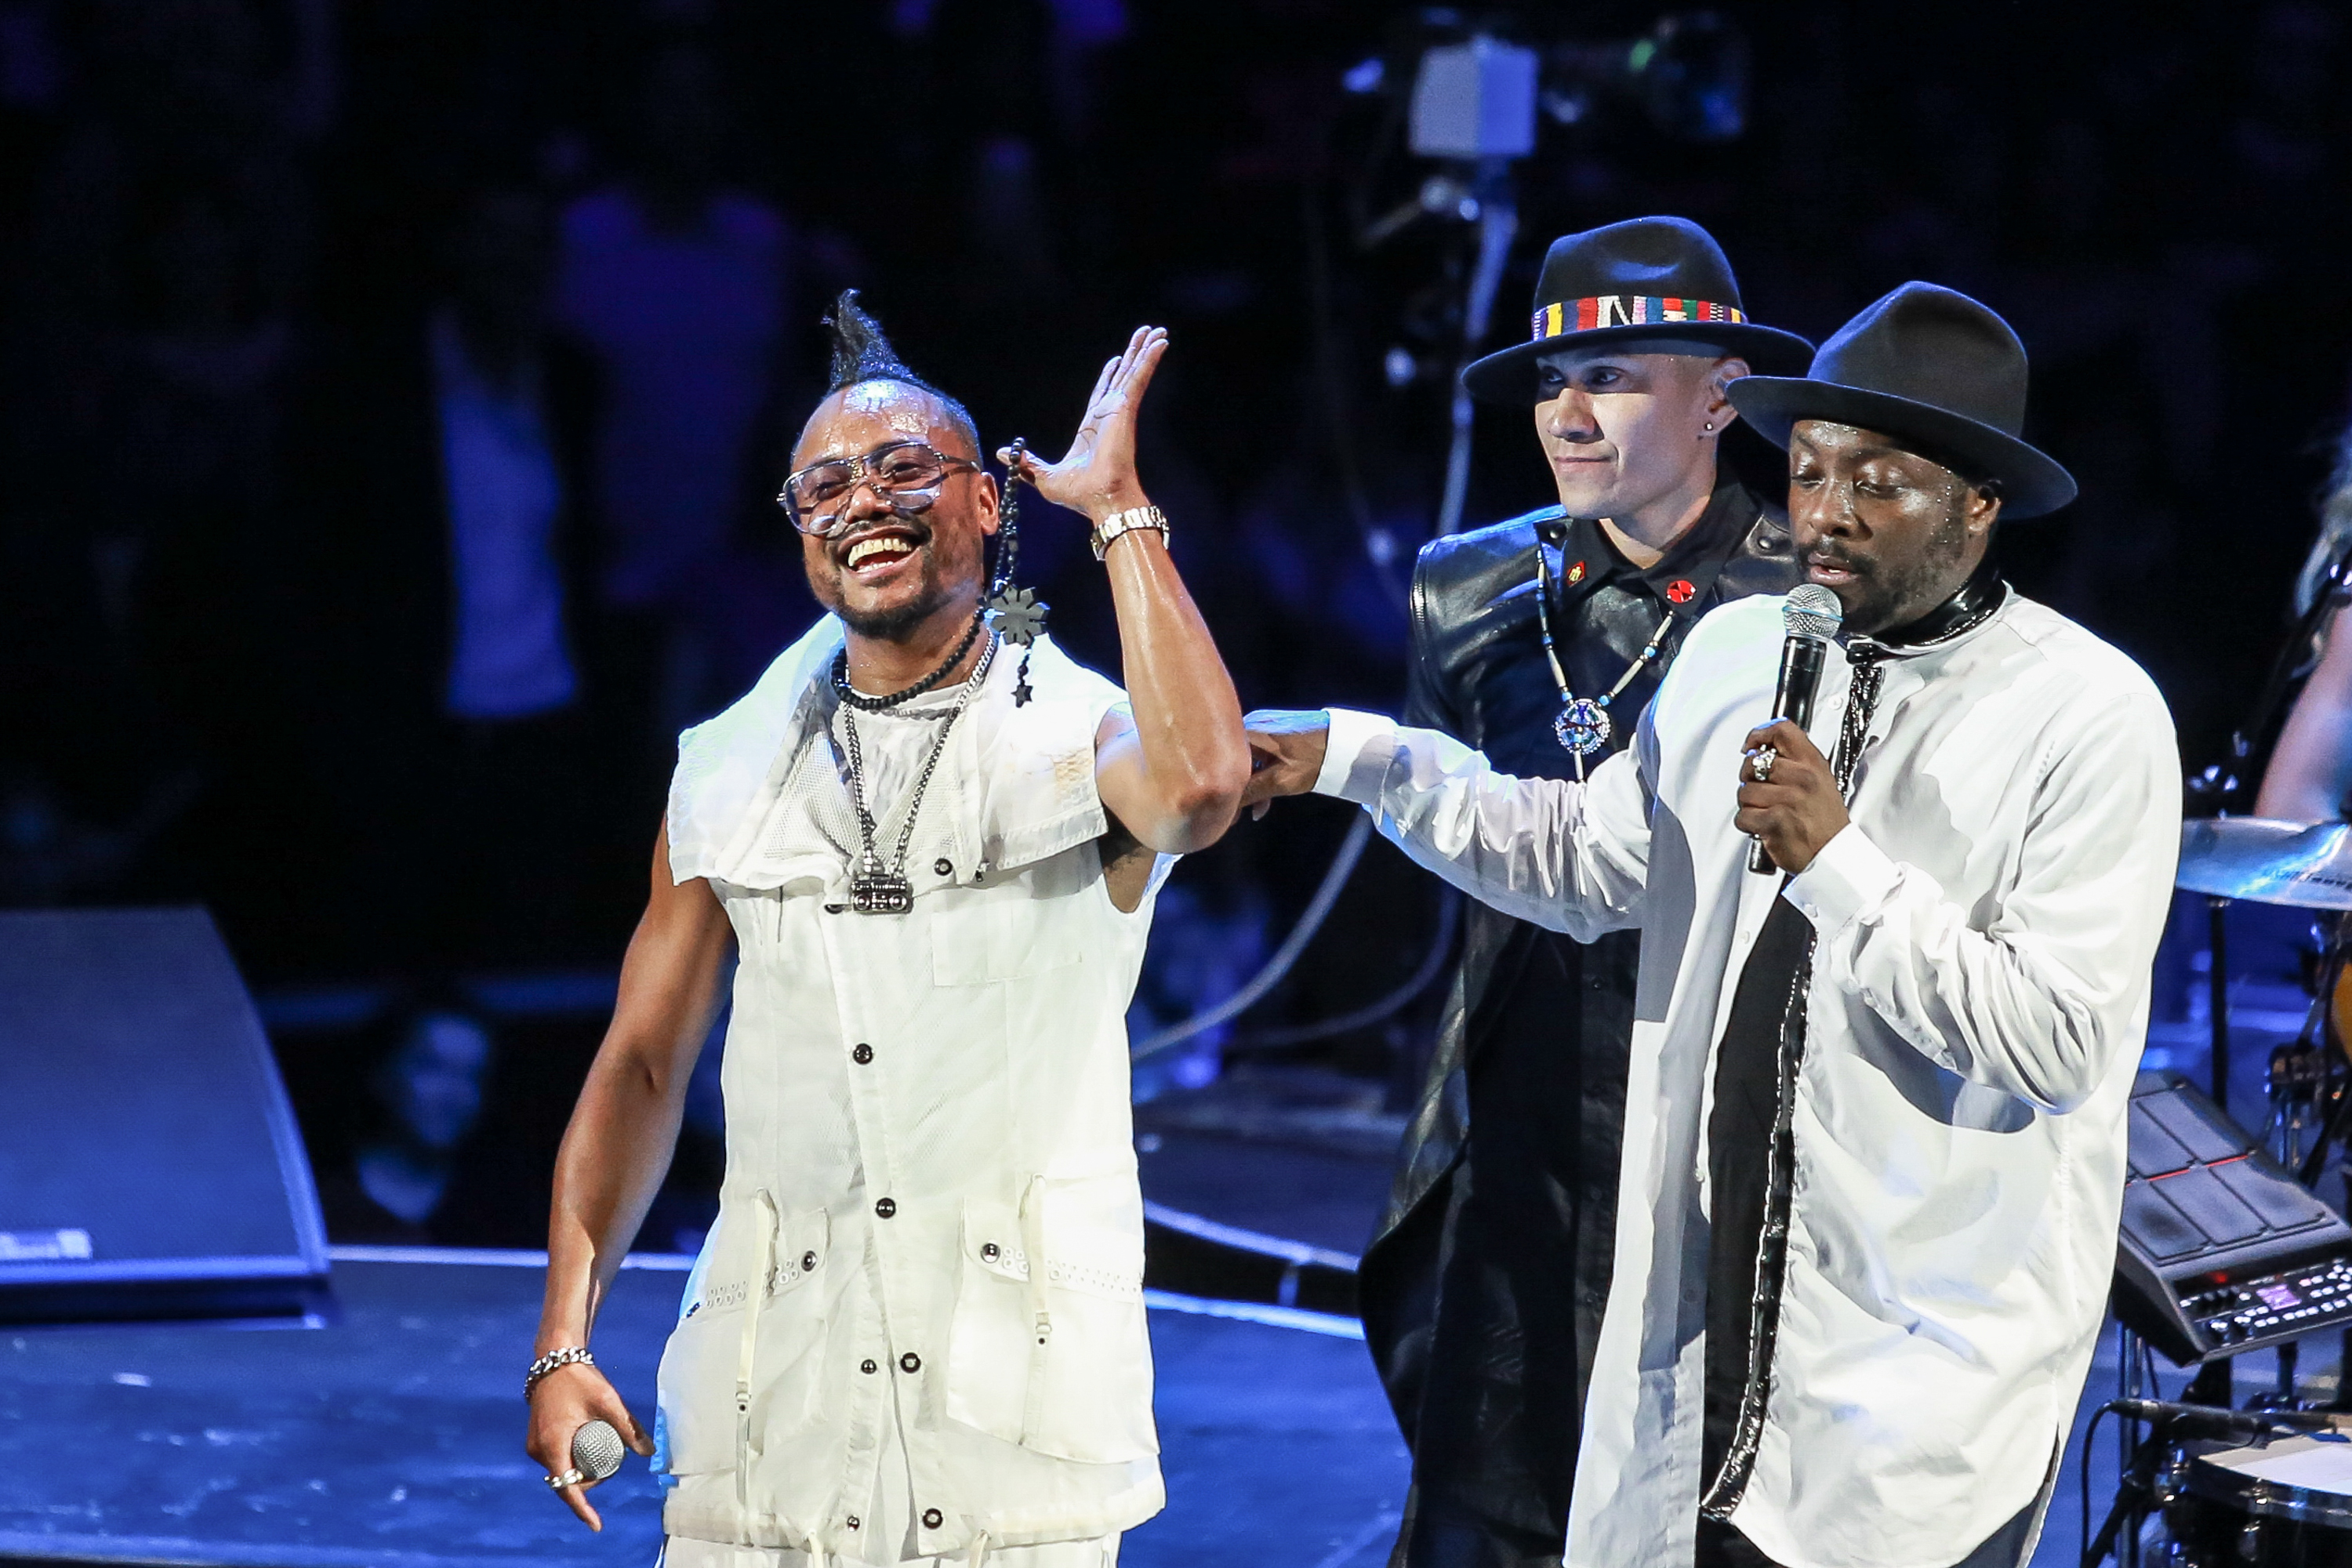 will.i.am confirms new Black Eyed Peas music is nearly here